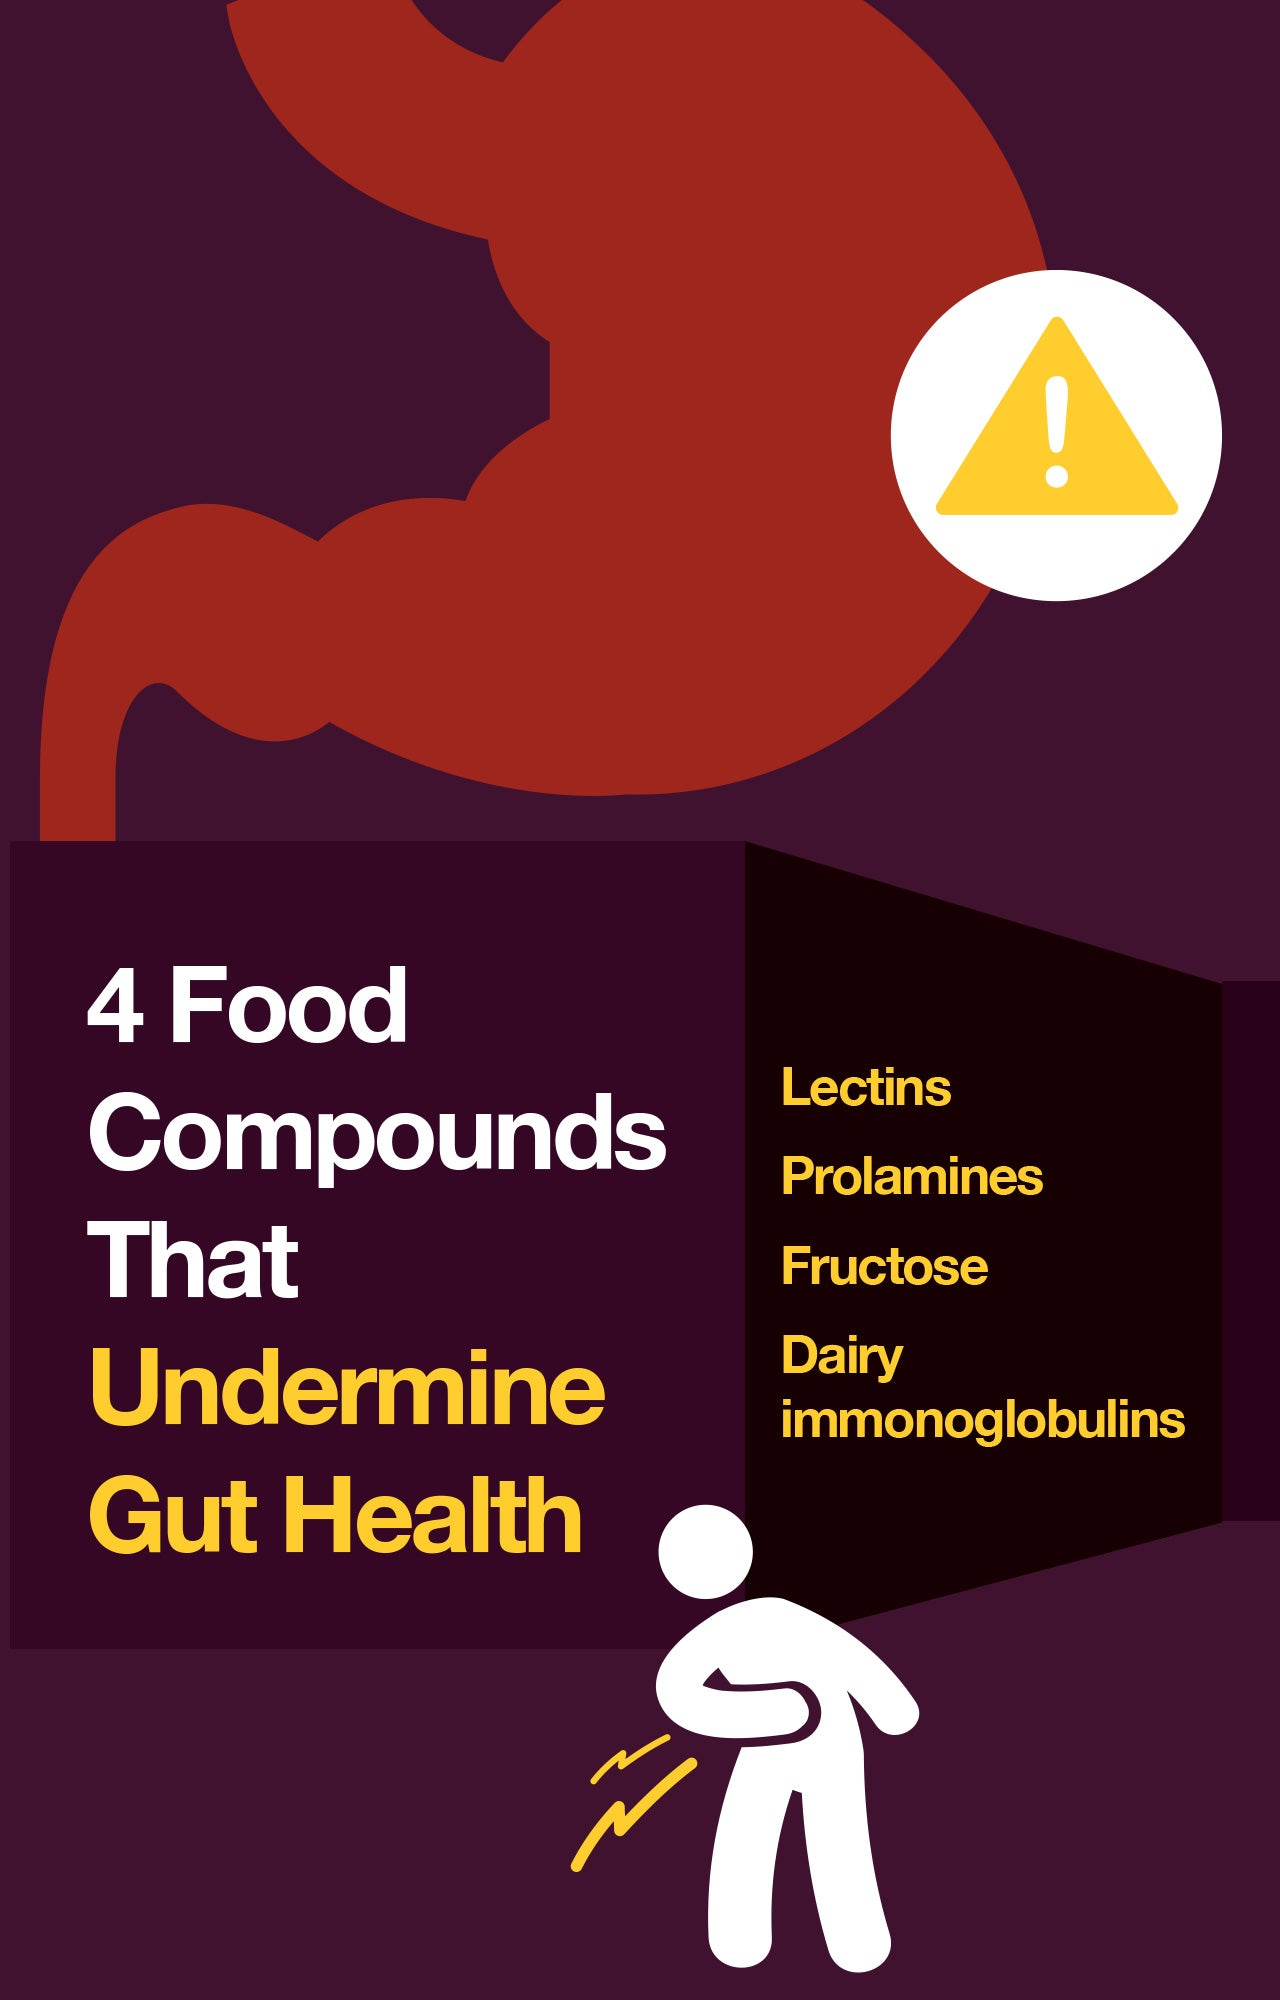 Food compounds bad for gut health